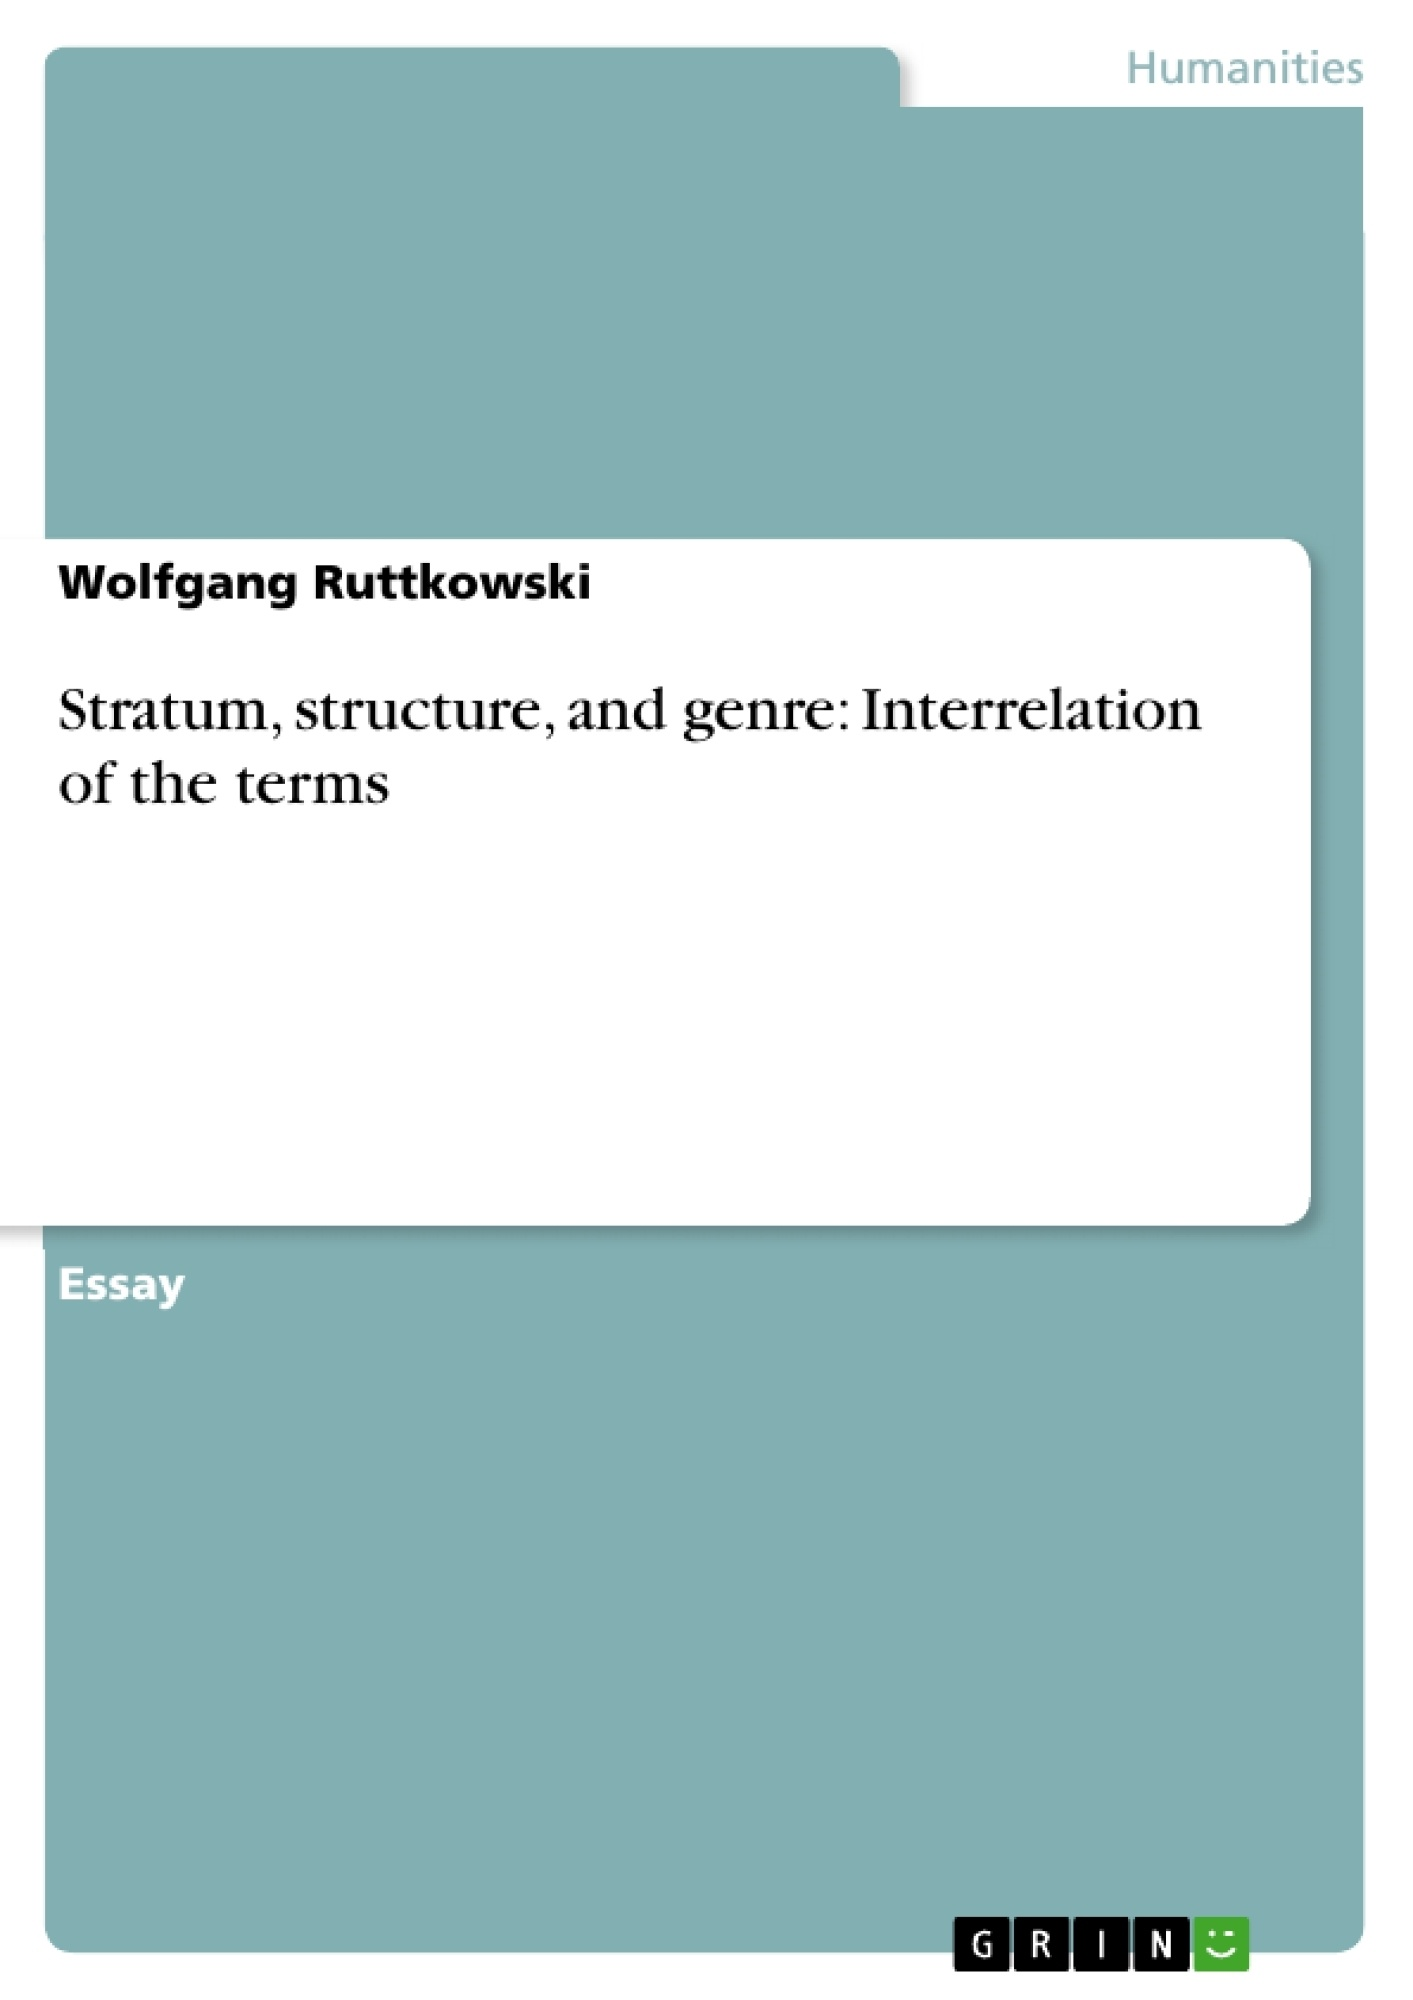 Title: Stratum, structure, and genre: Interrelation of the terms